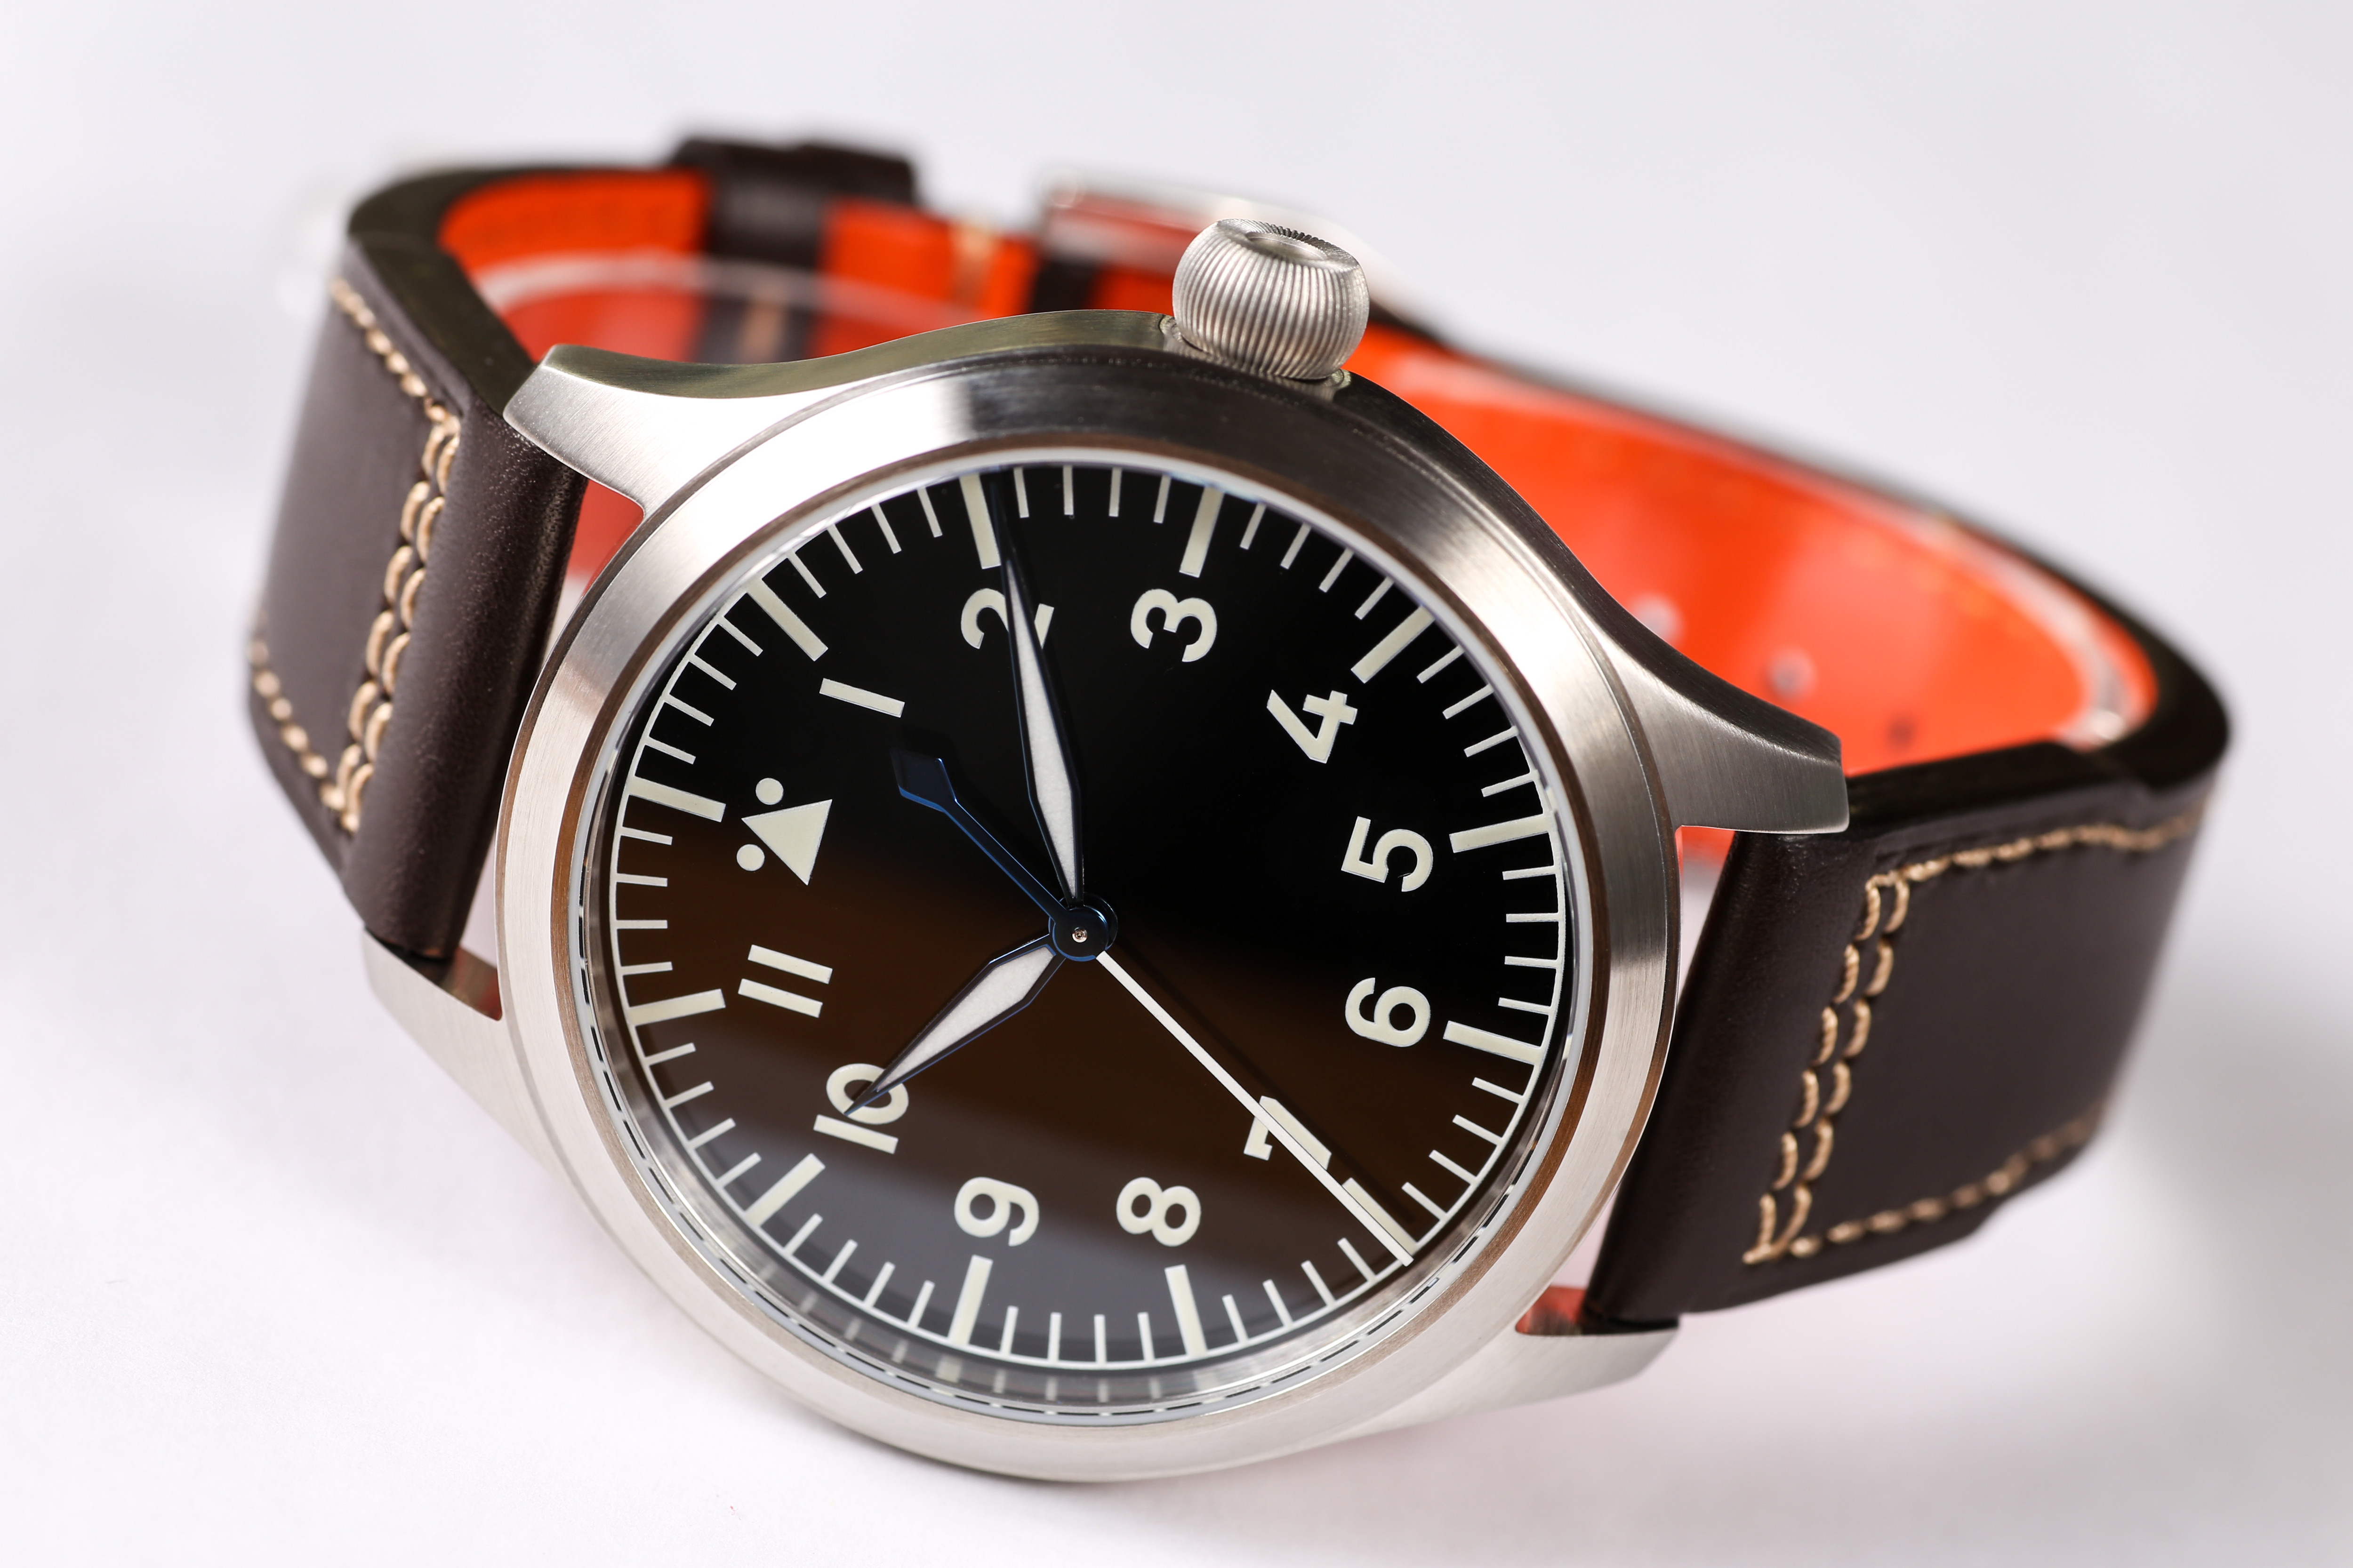 【Escapement Time】Automatic NH35 Movement Pilot Watch with Type-B or Type-A Black Dial and 42mm Case waterproof 300M 2